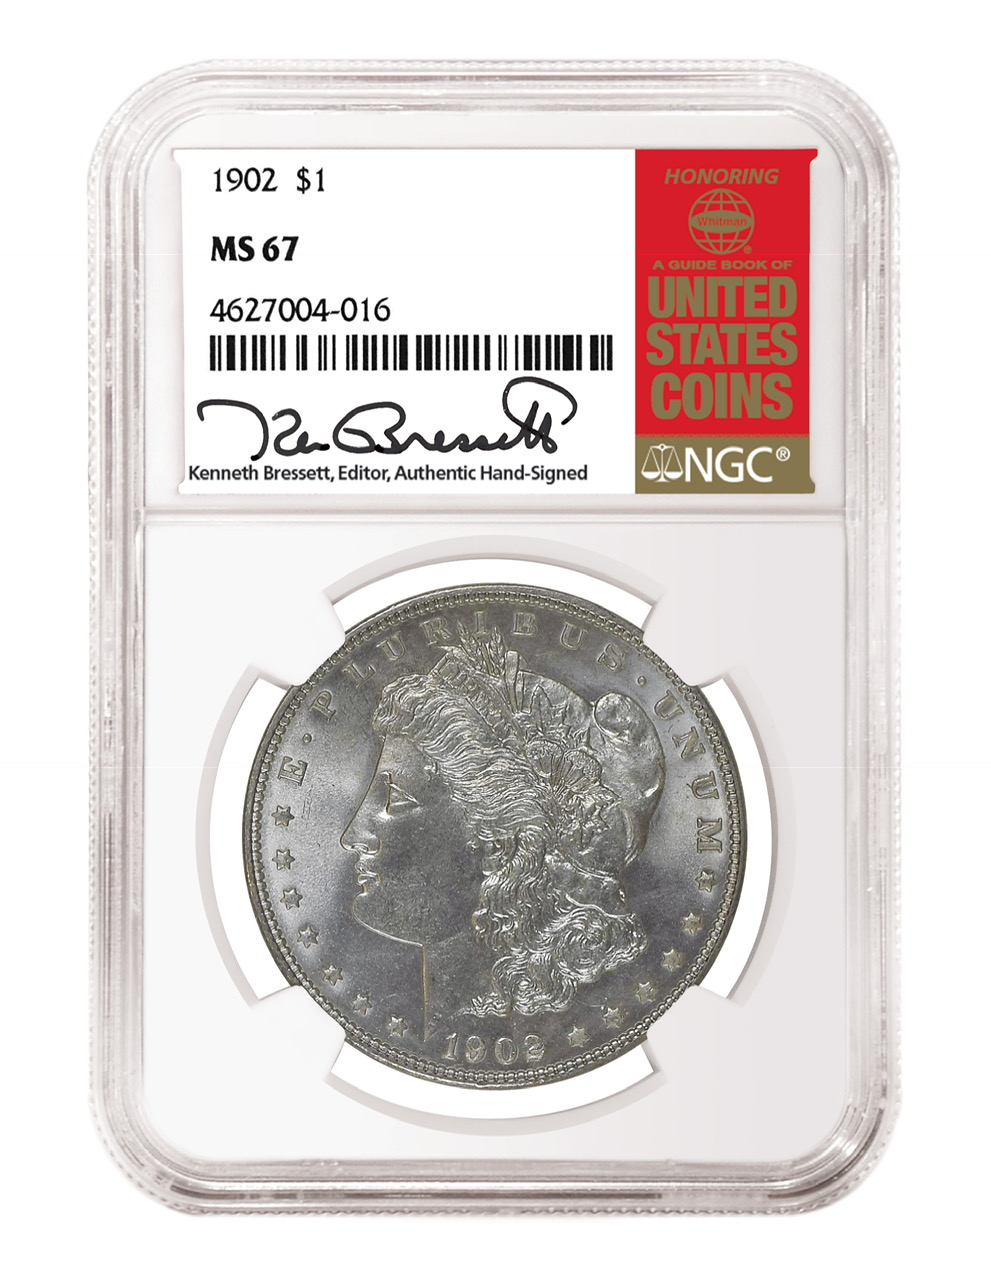 main image for NGC Labels Hand-Signed by Kenneth Bressett Now Available from Westminster Mint